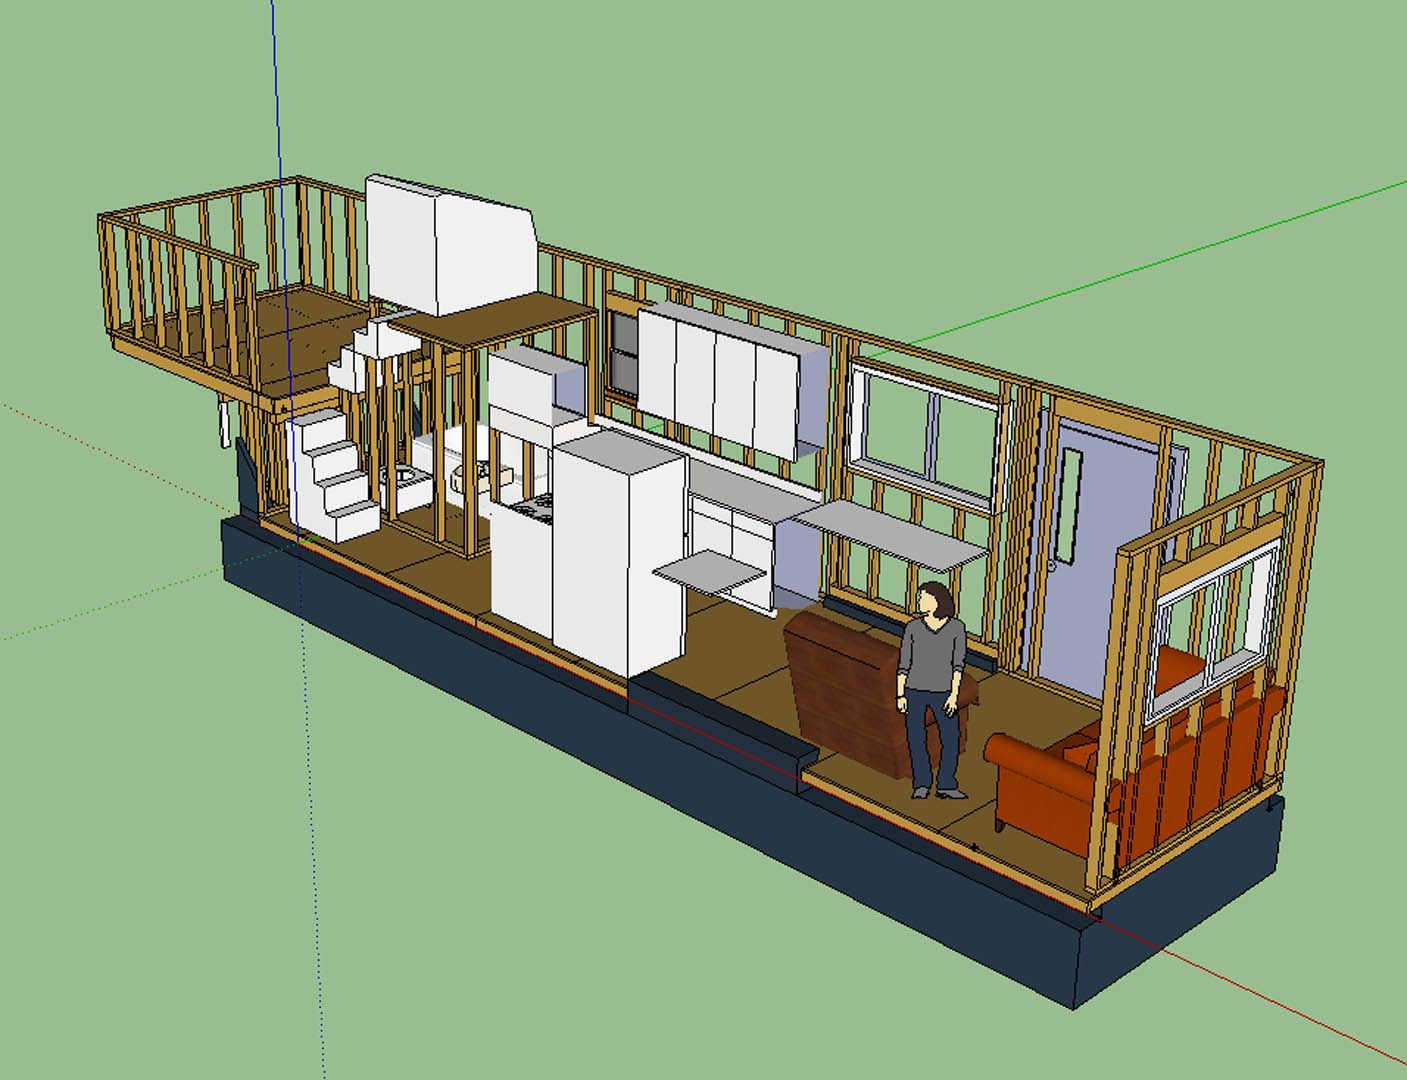 Http Www Fatandcrunchy Com Wp Content Uploads 2012 08 Screen Shot 2012 04 09 At 9 50 09 Pm Jpg Tiny House Layout Tiny House Floor Plans Tiny House Plans